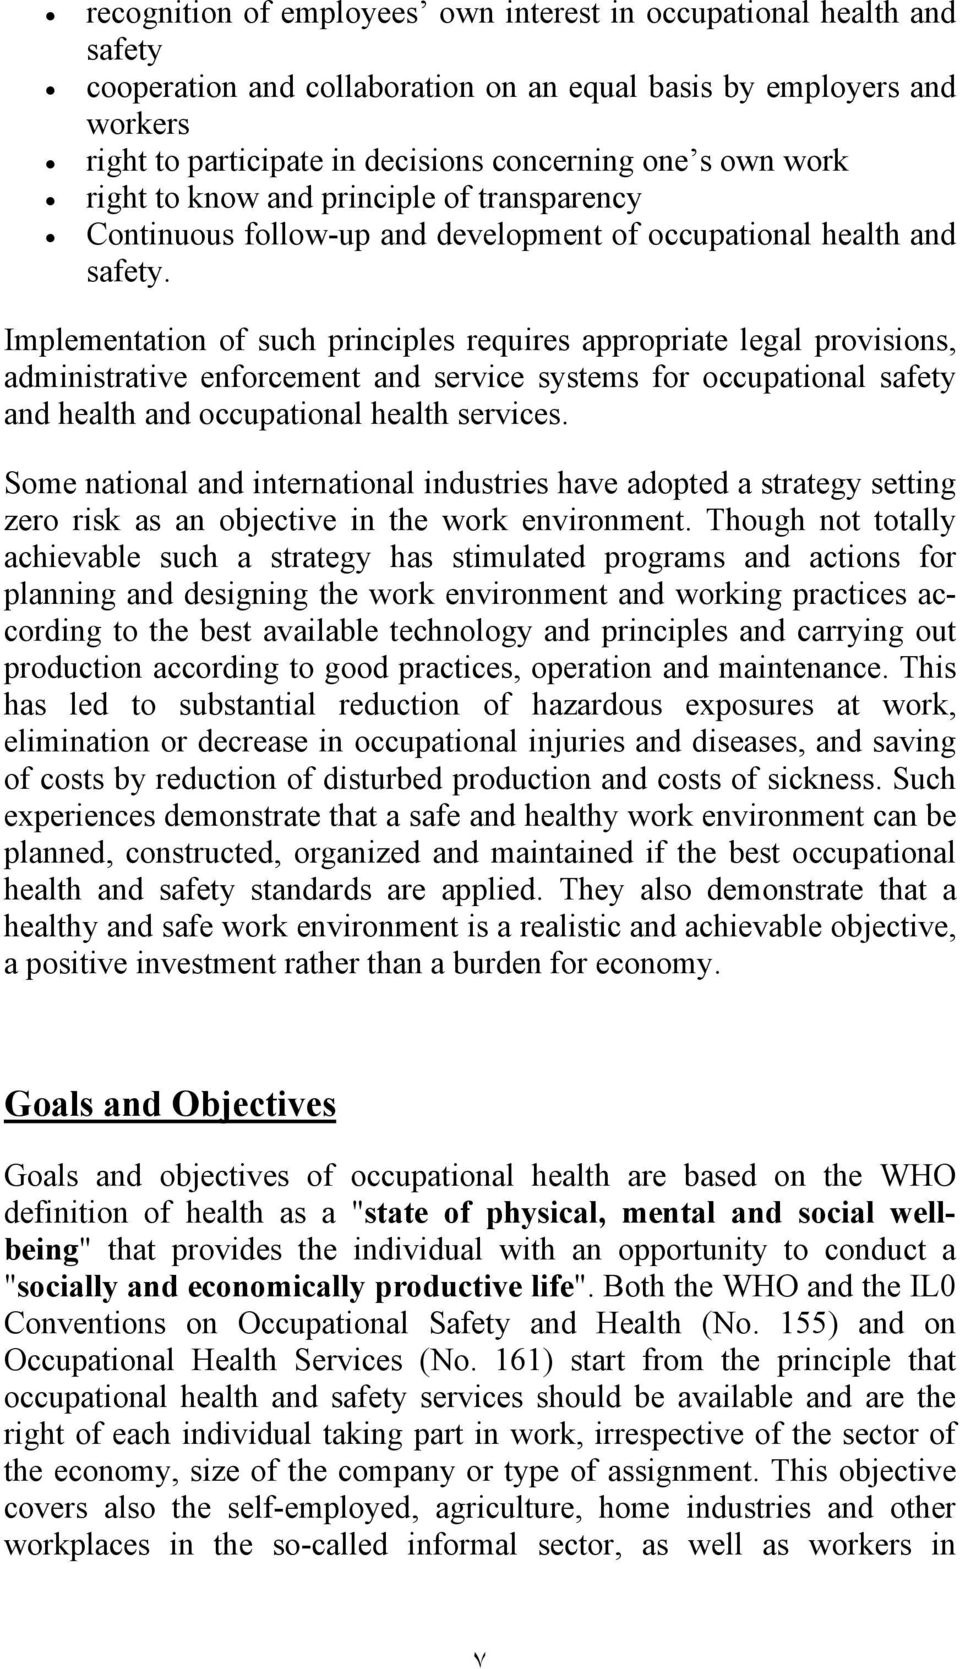 Implementation of such principles requires appropriate legal provisions, administrative enforcement and service systems for occupational safety and health and occupational health services.